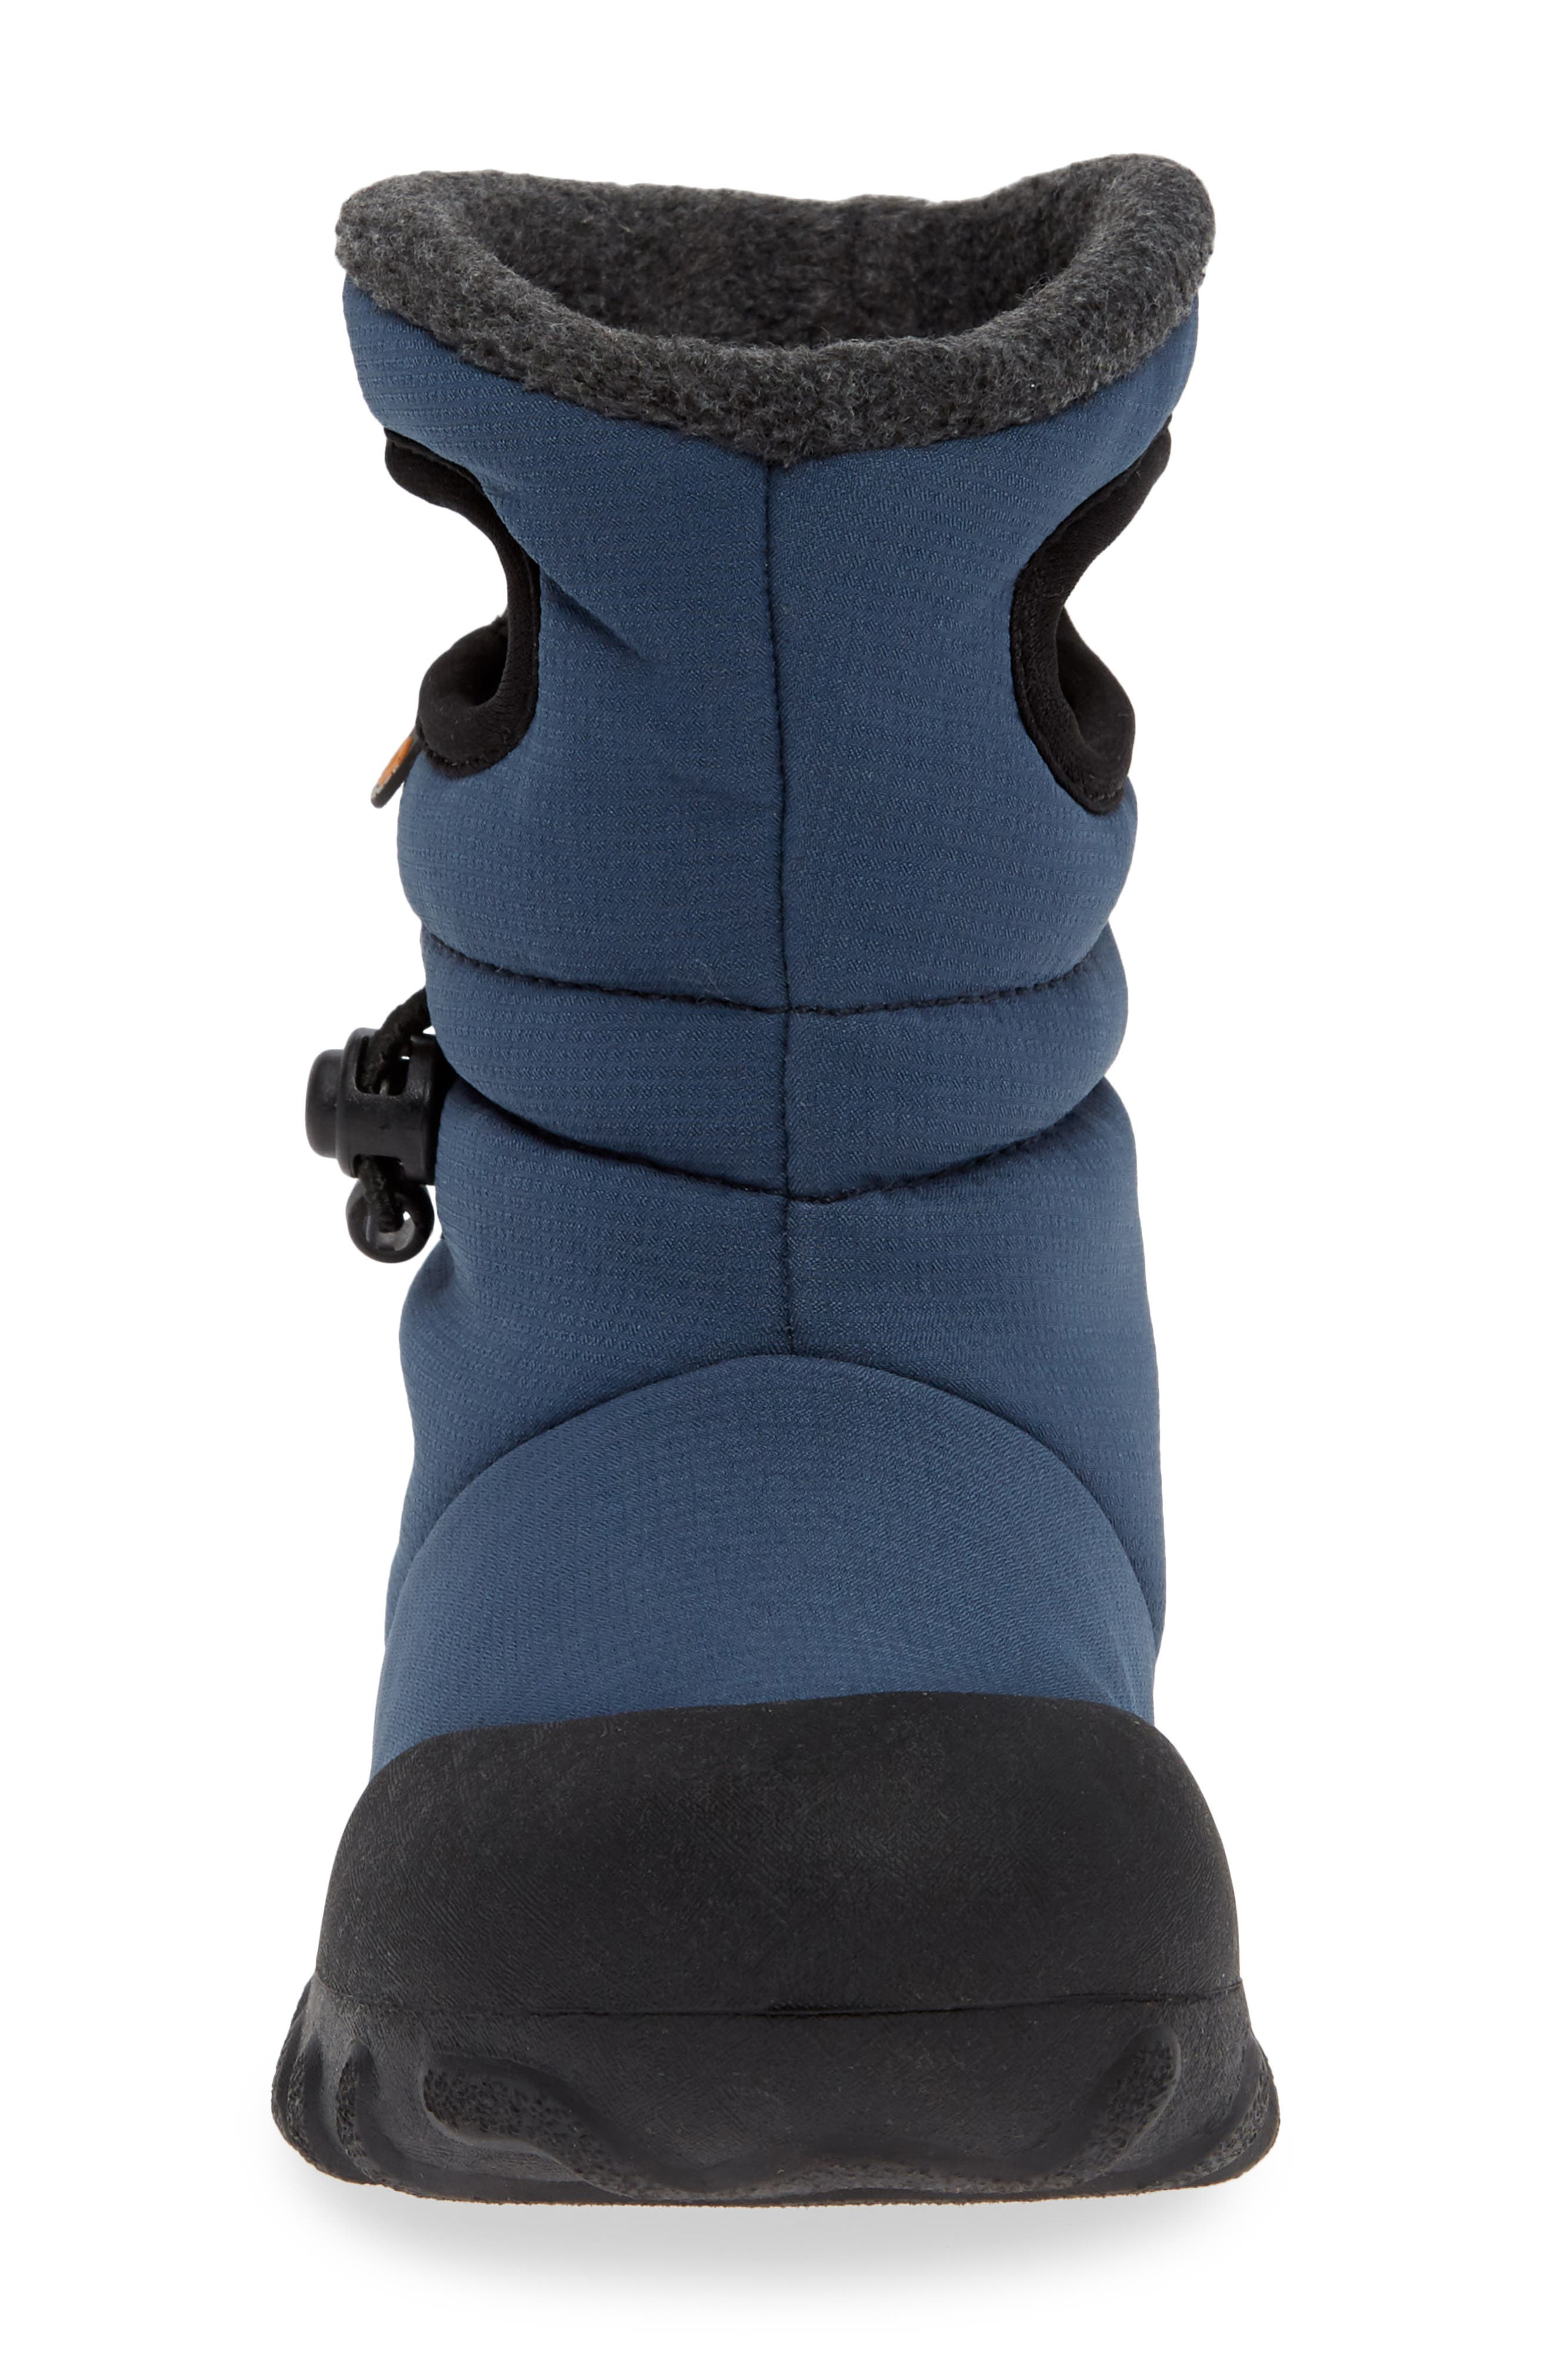 B-MOC Puff Waterproof Insulated Boot,                             Alternate thumbnail 4, color,                             NAVY